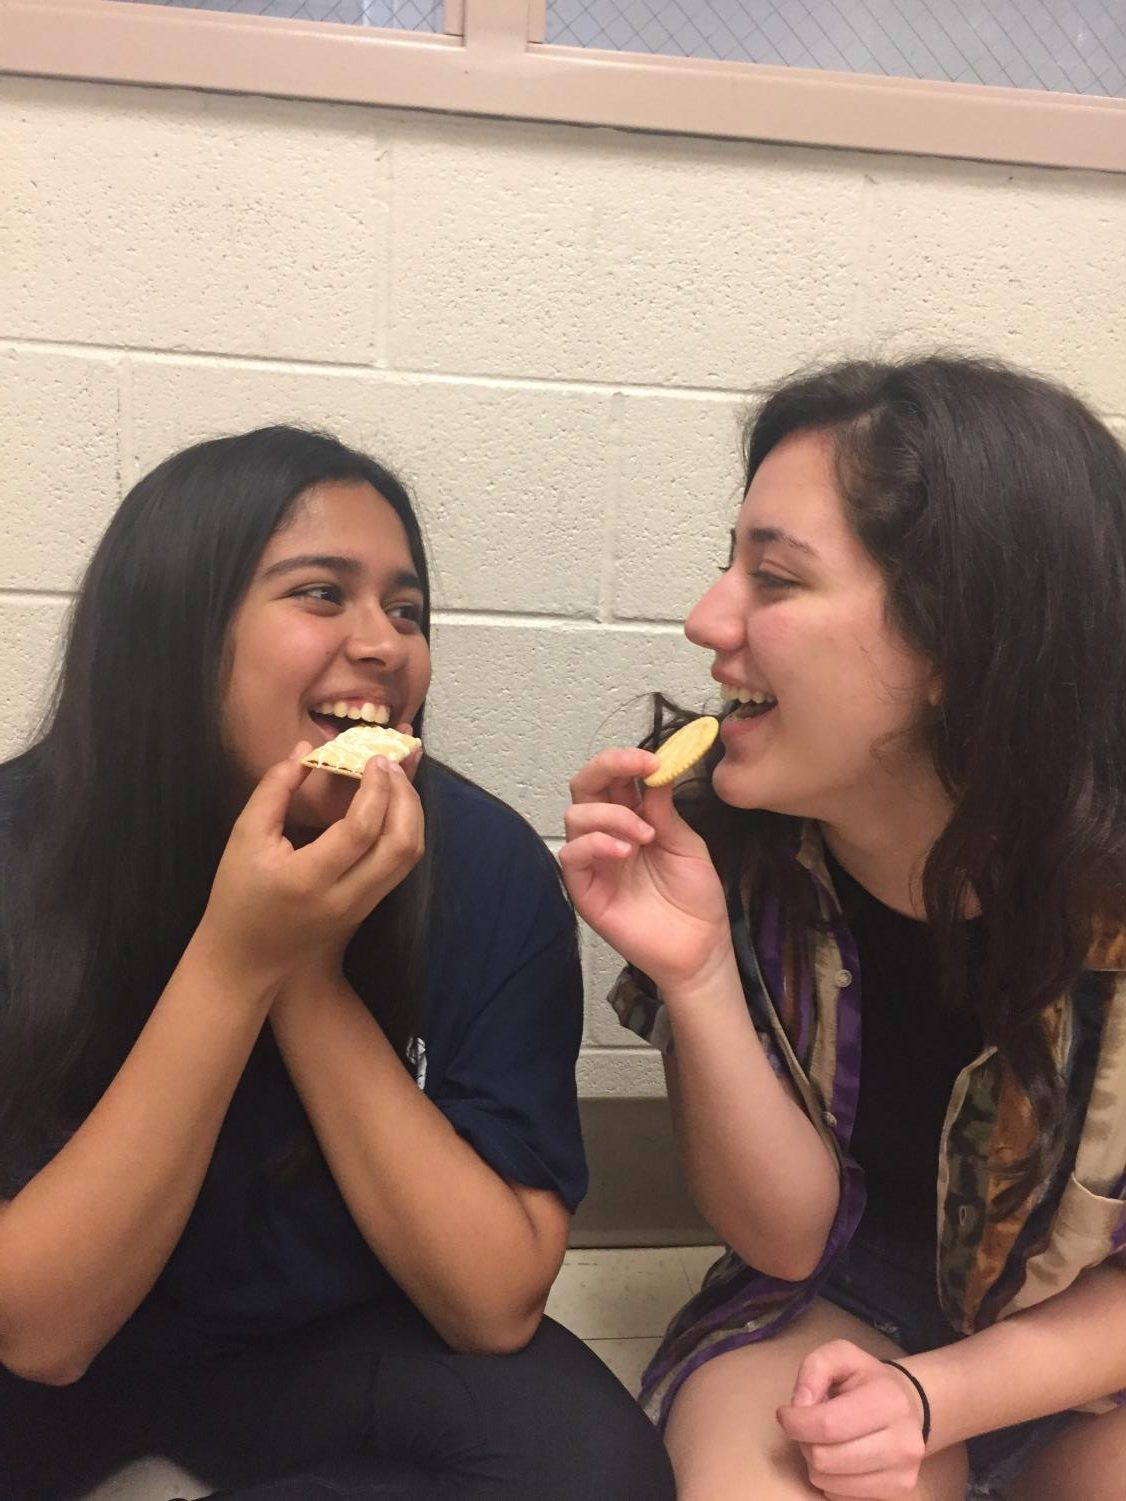 Two CHS students participate in Mukbanging, a common form of ASMR, in which people eat and record the sounds of chewing food. ASMR has become popular among teenagers on social media.